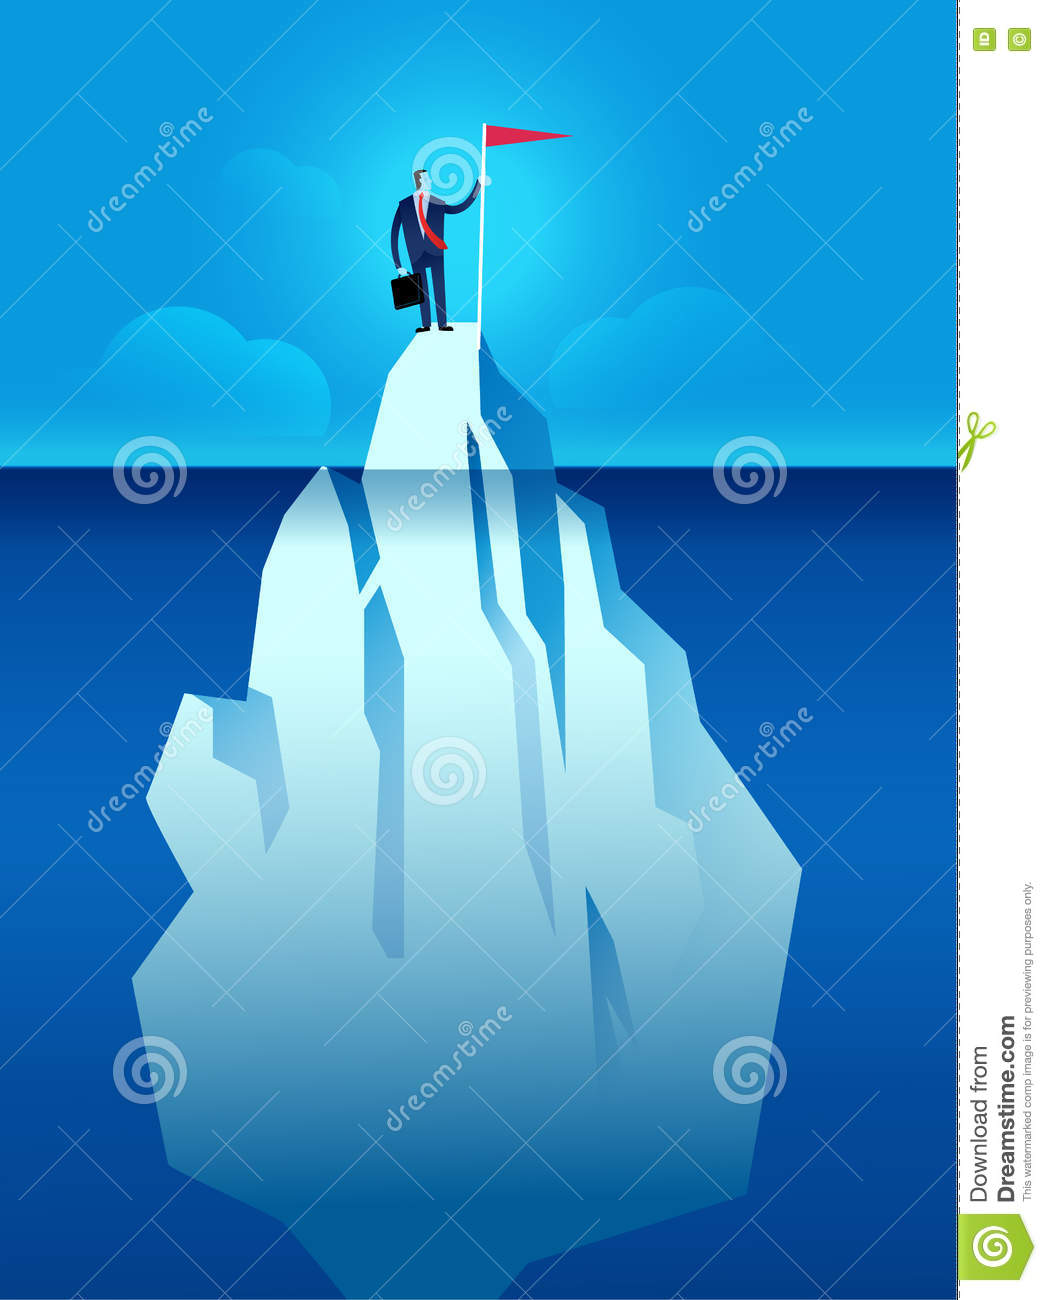 Business Man With Flag On The Iceberg Vector Illustration Stock Vector ...